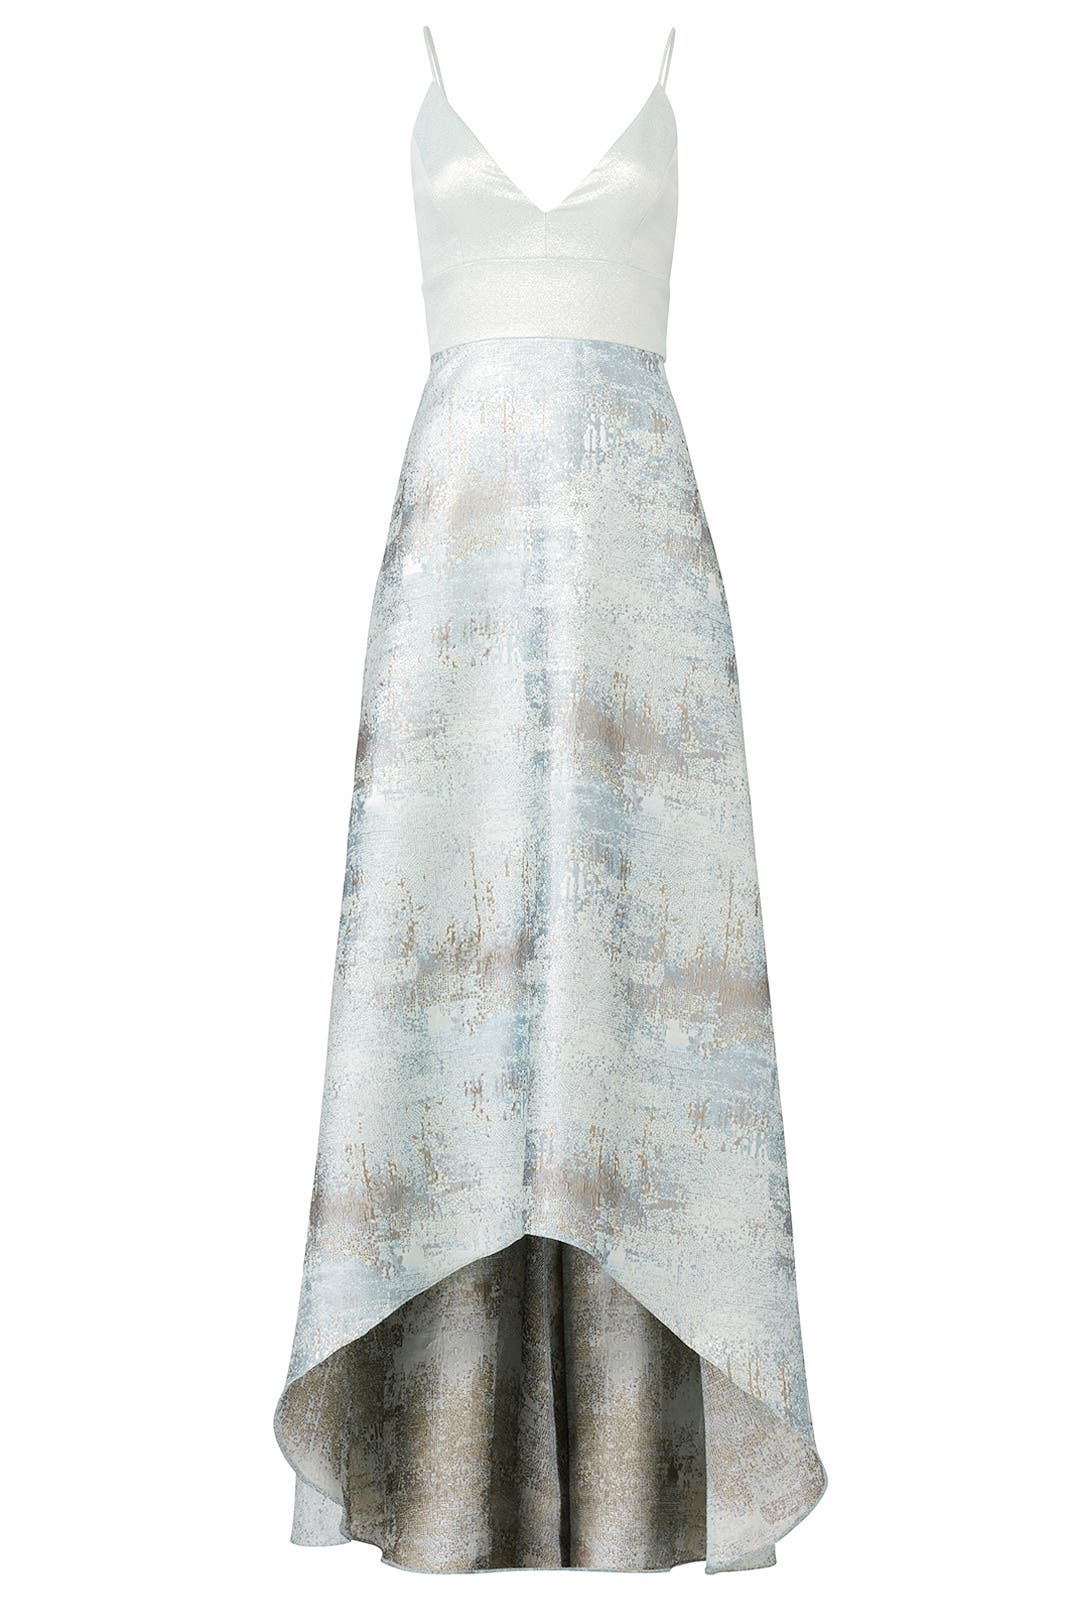 Metallic Blue Gown by Badgley Mischka for $100 - $120 | Rent the Runway